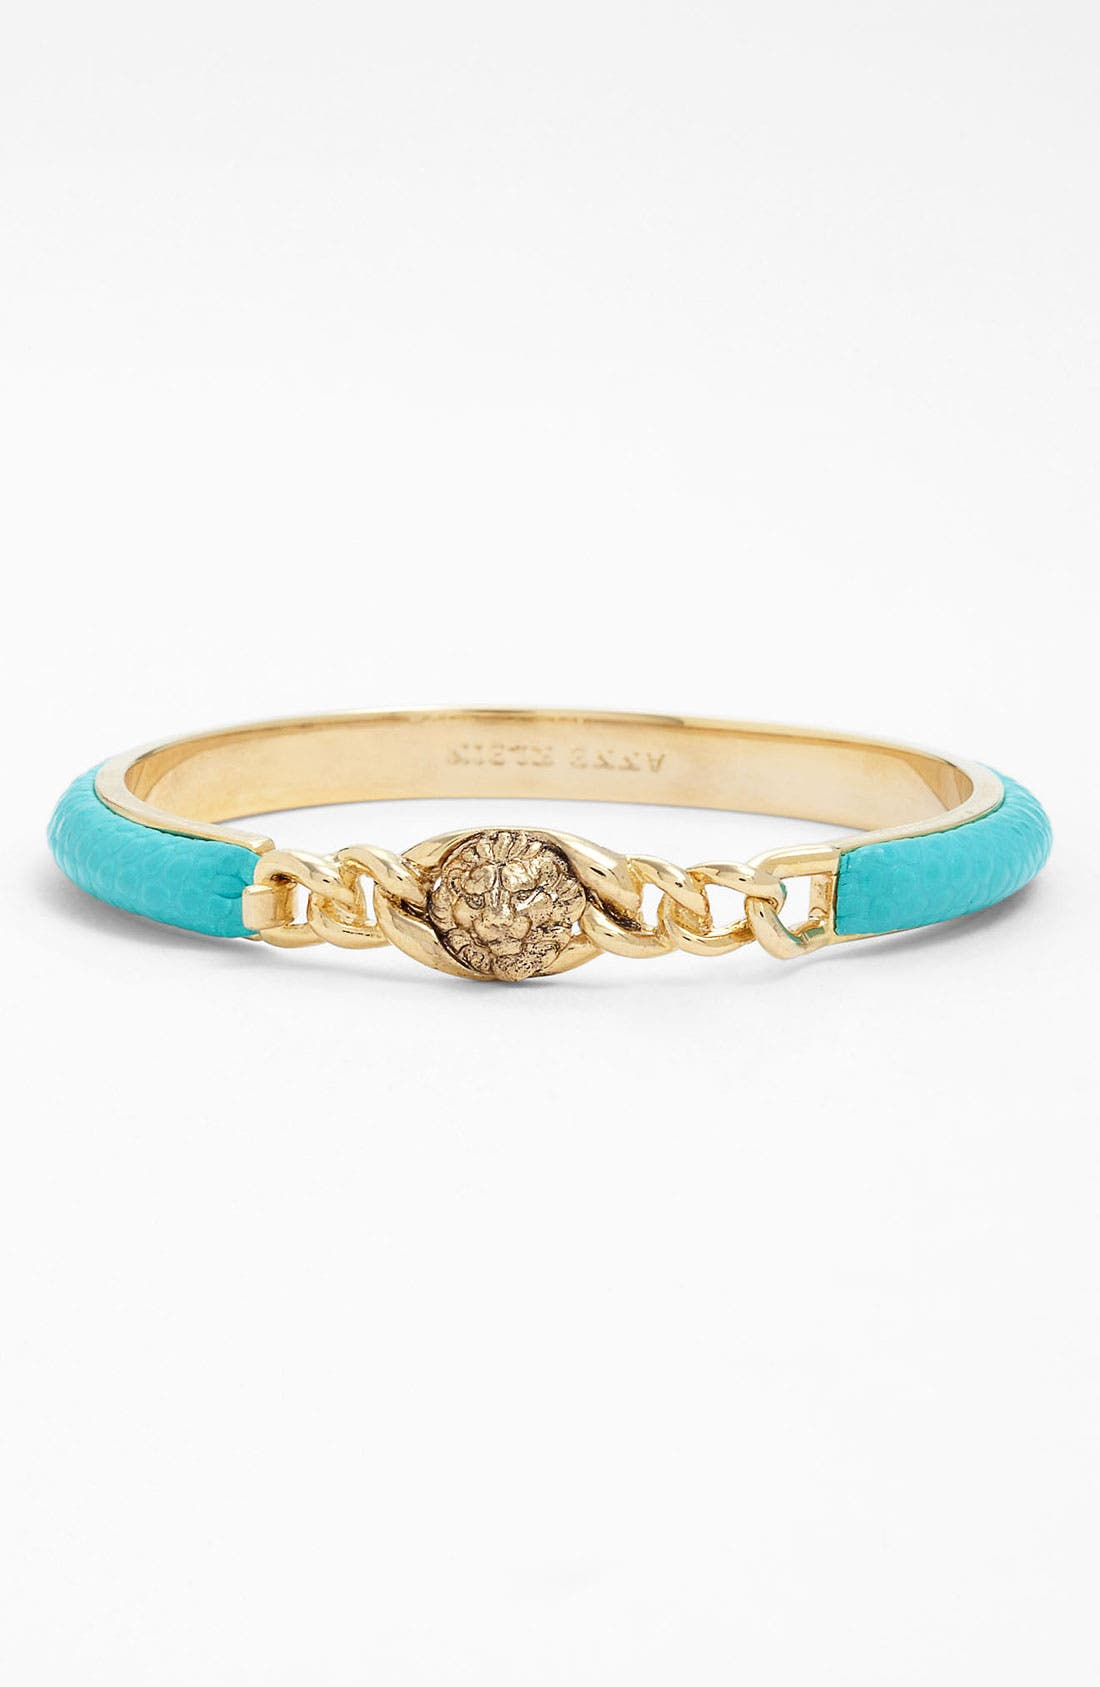 Alternate Image 1 Selected - Anne Klein 'Wild Side' Thin Leather Lionhead Bangle